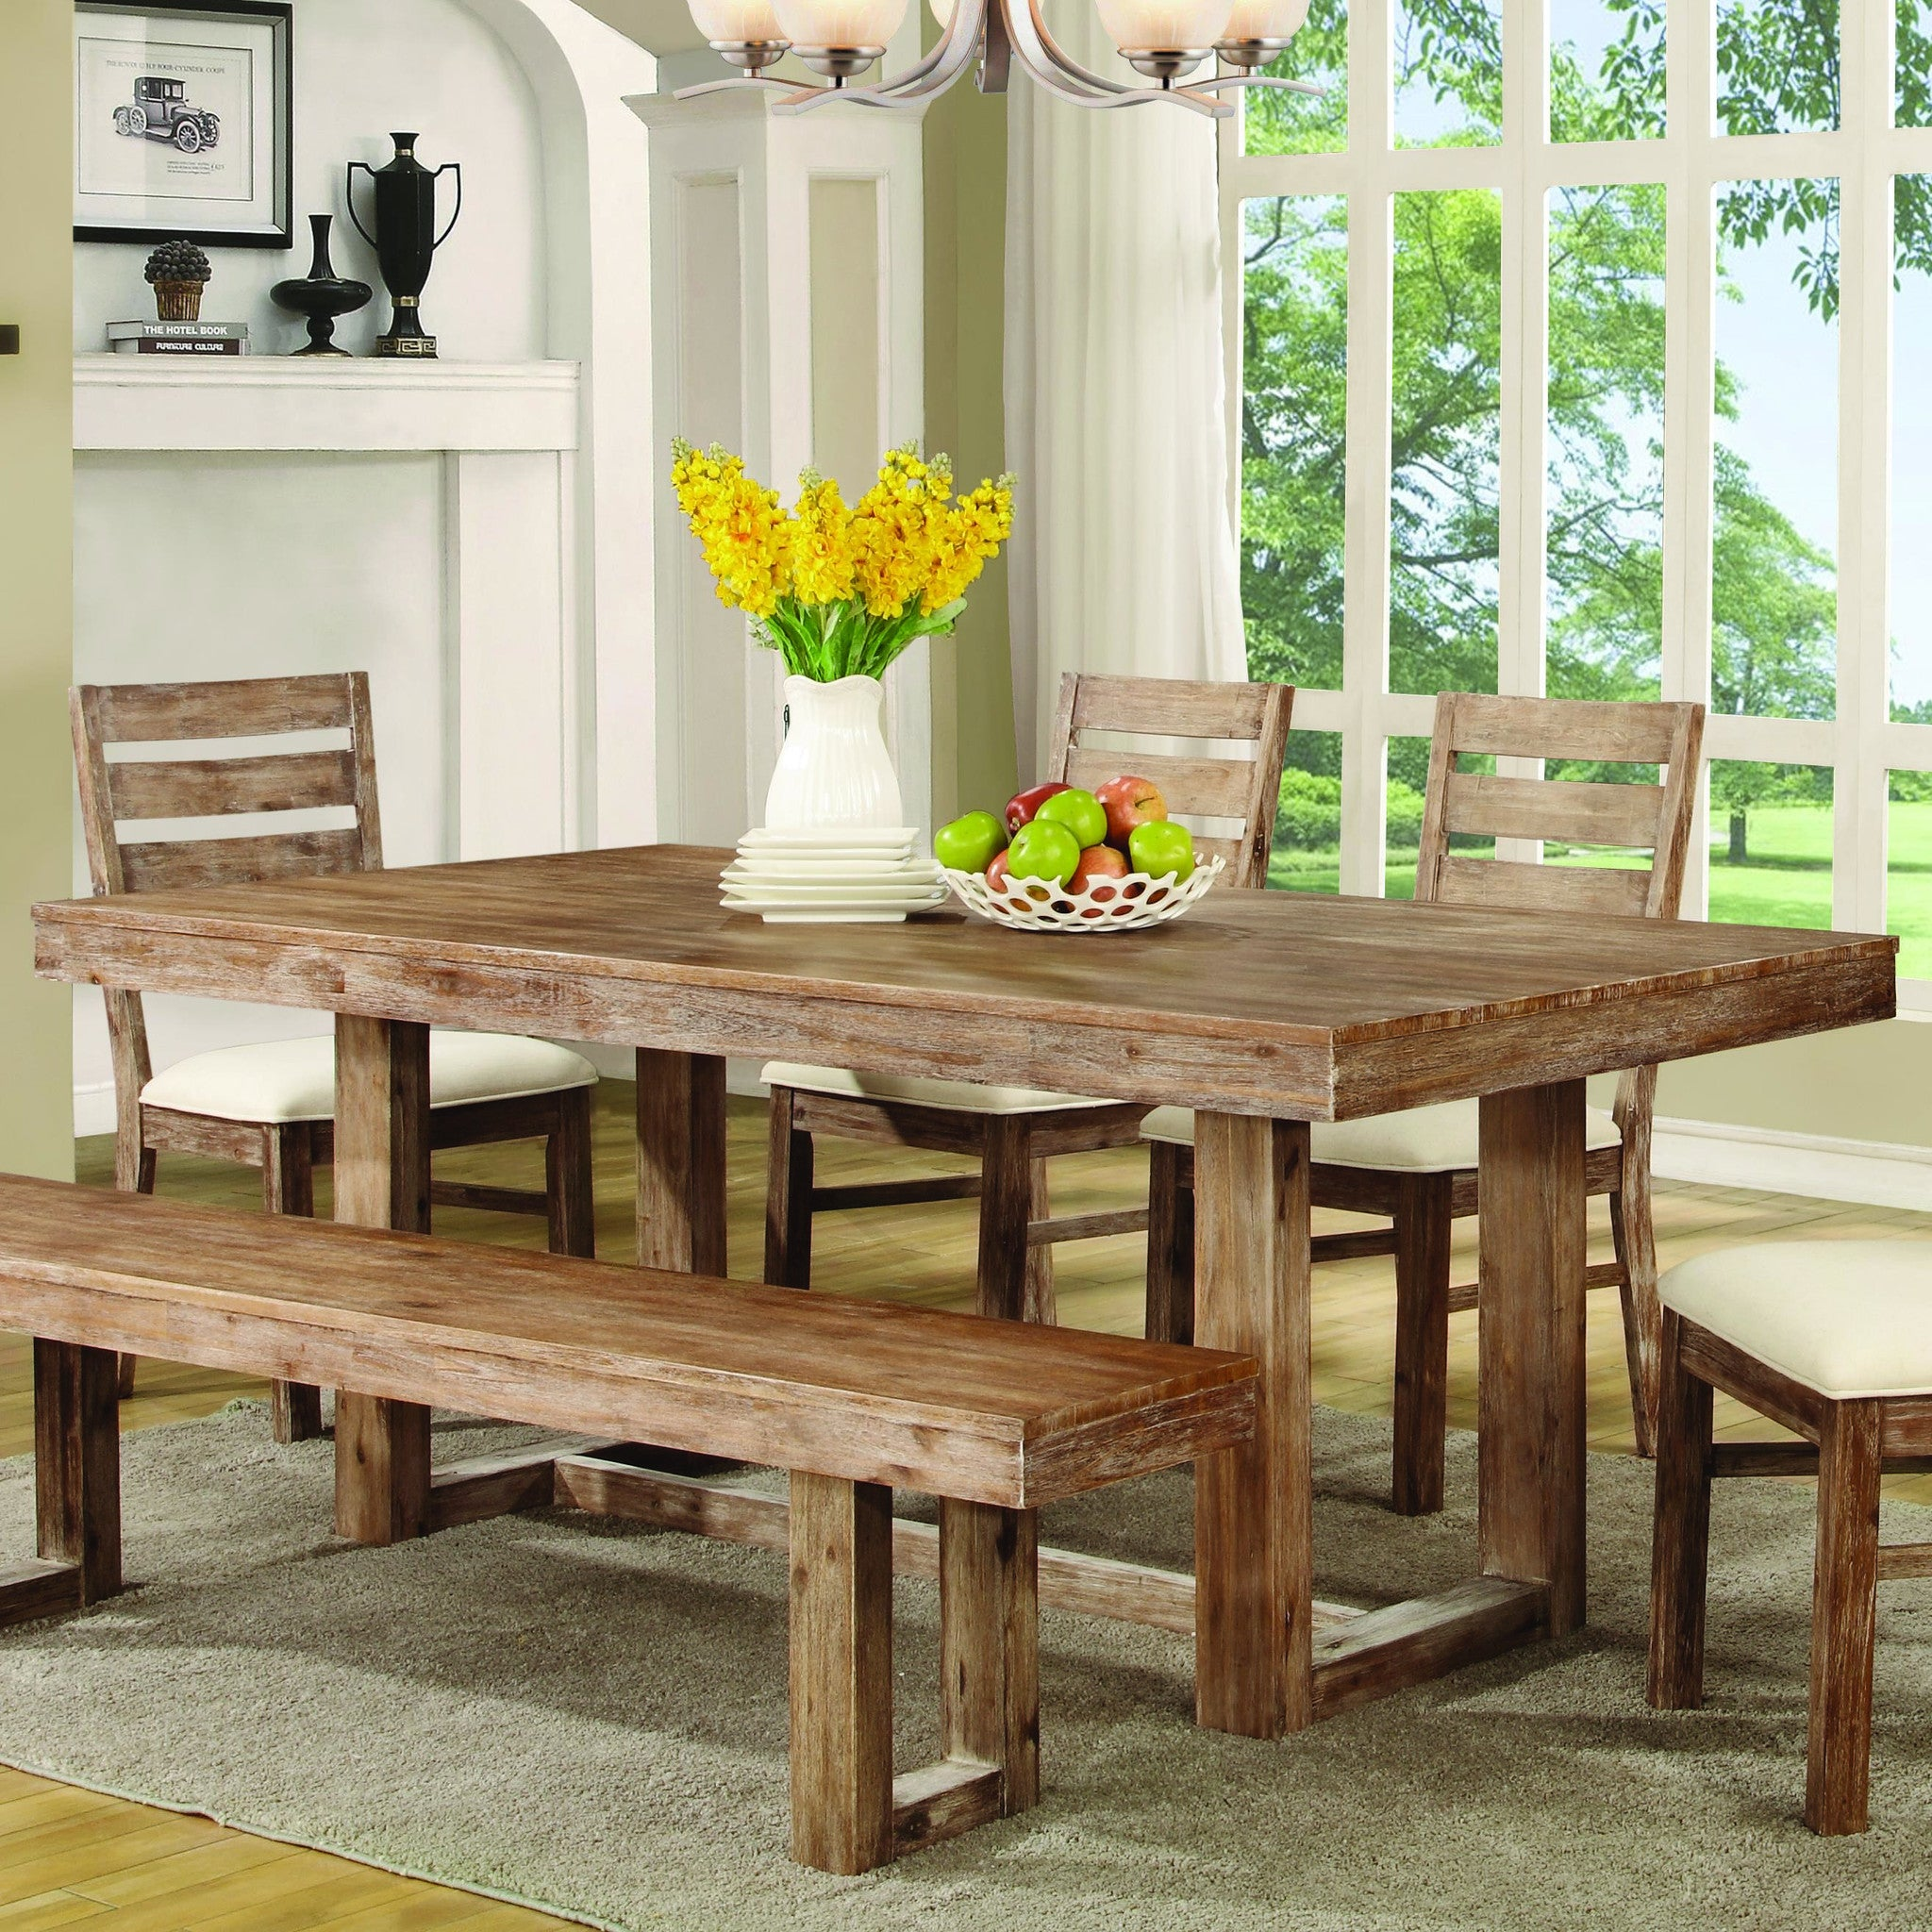 Elmwood Rustic Dining Room Table